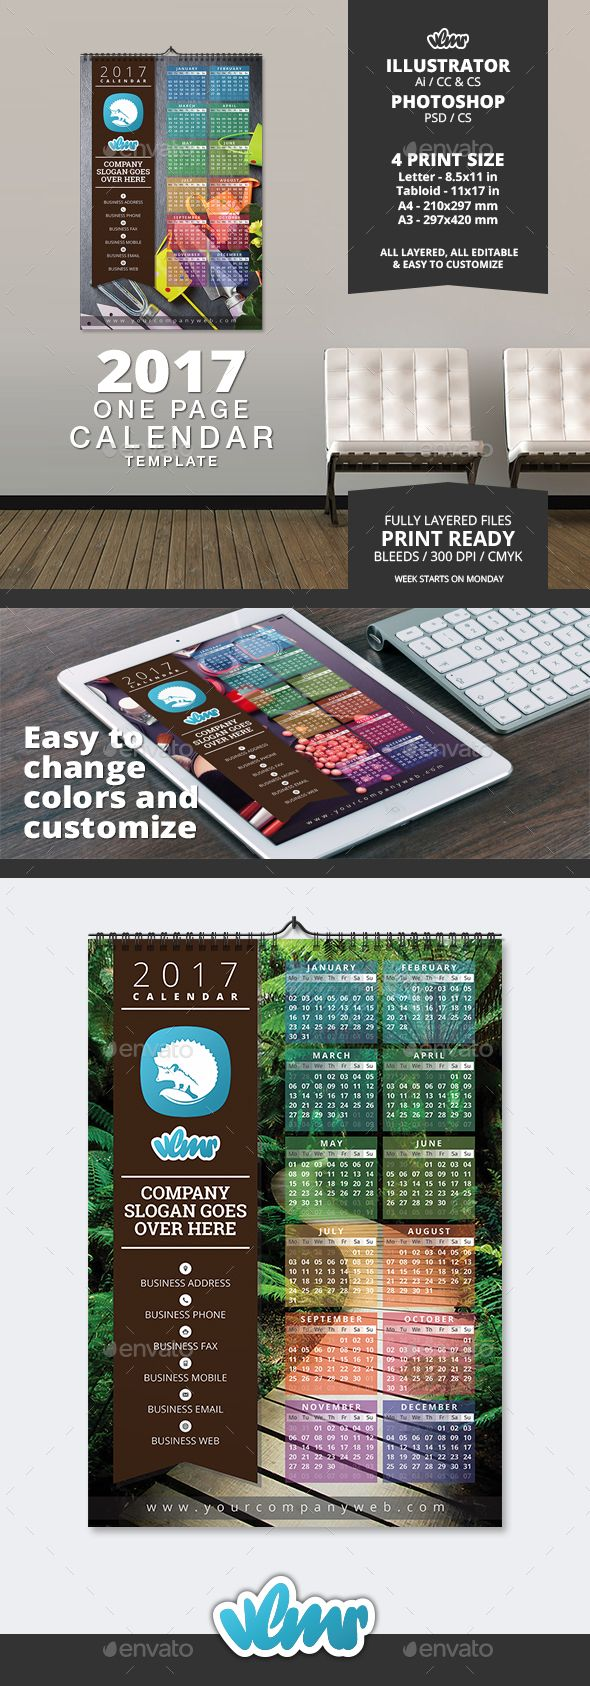 One Page Calendar Template  Ai Illustrator Template And